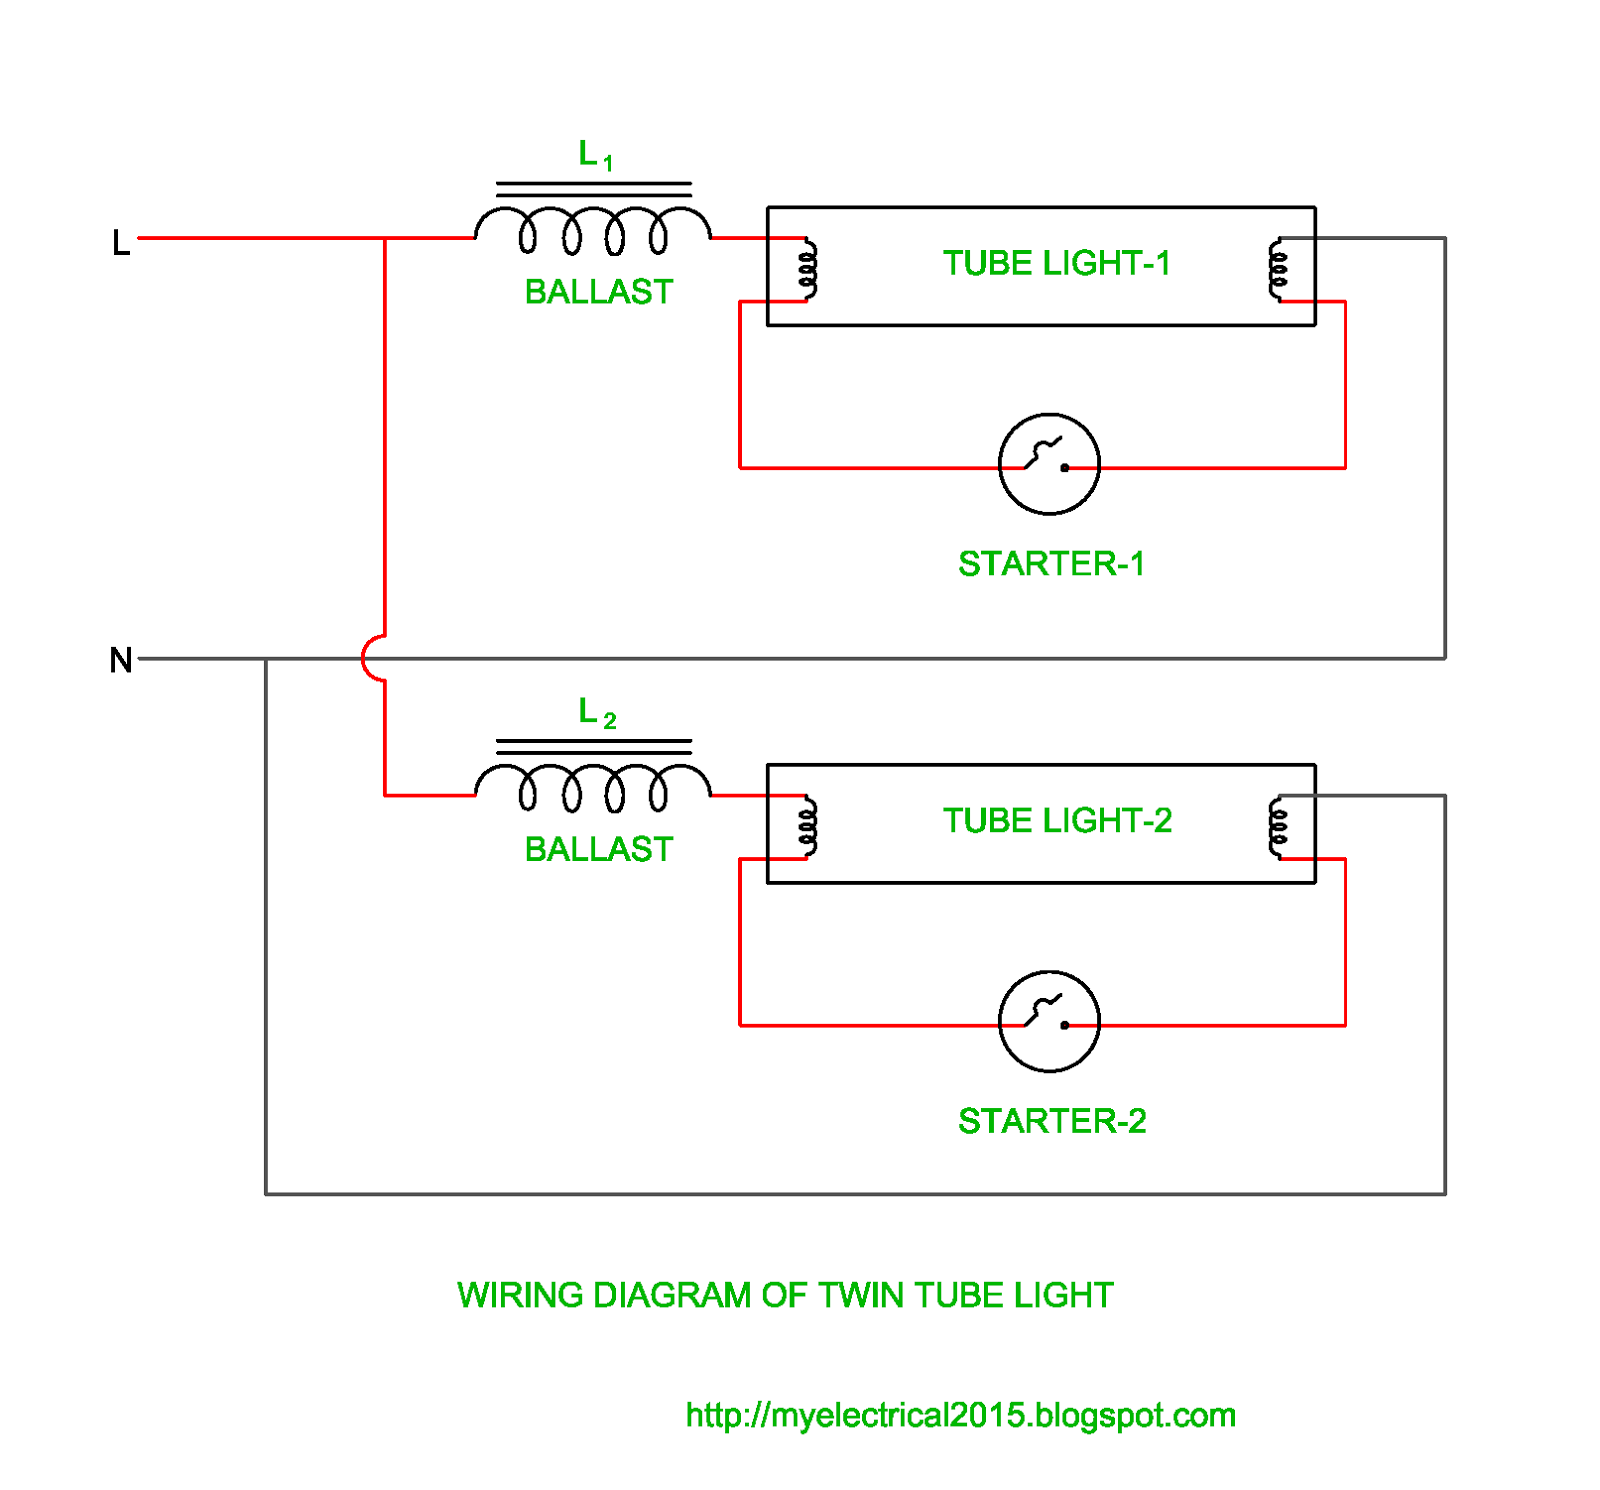 medium resolution of wiring diagram of twin tube light